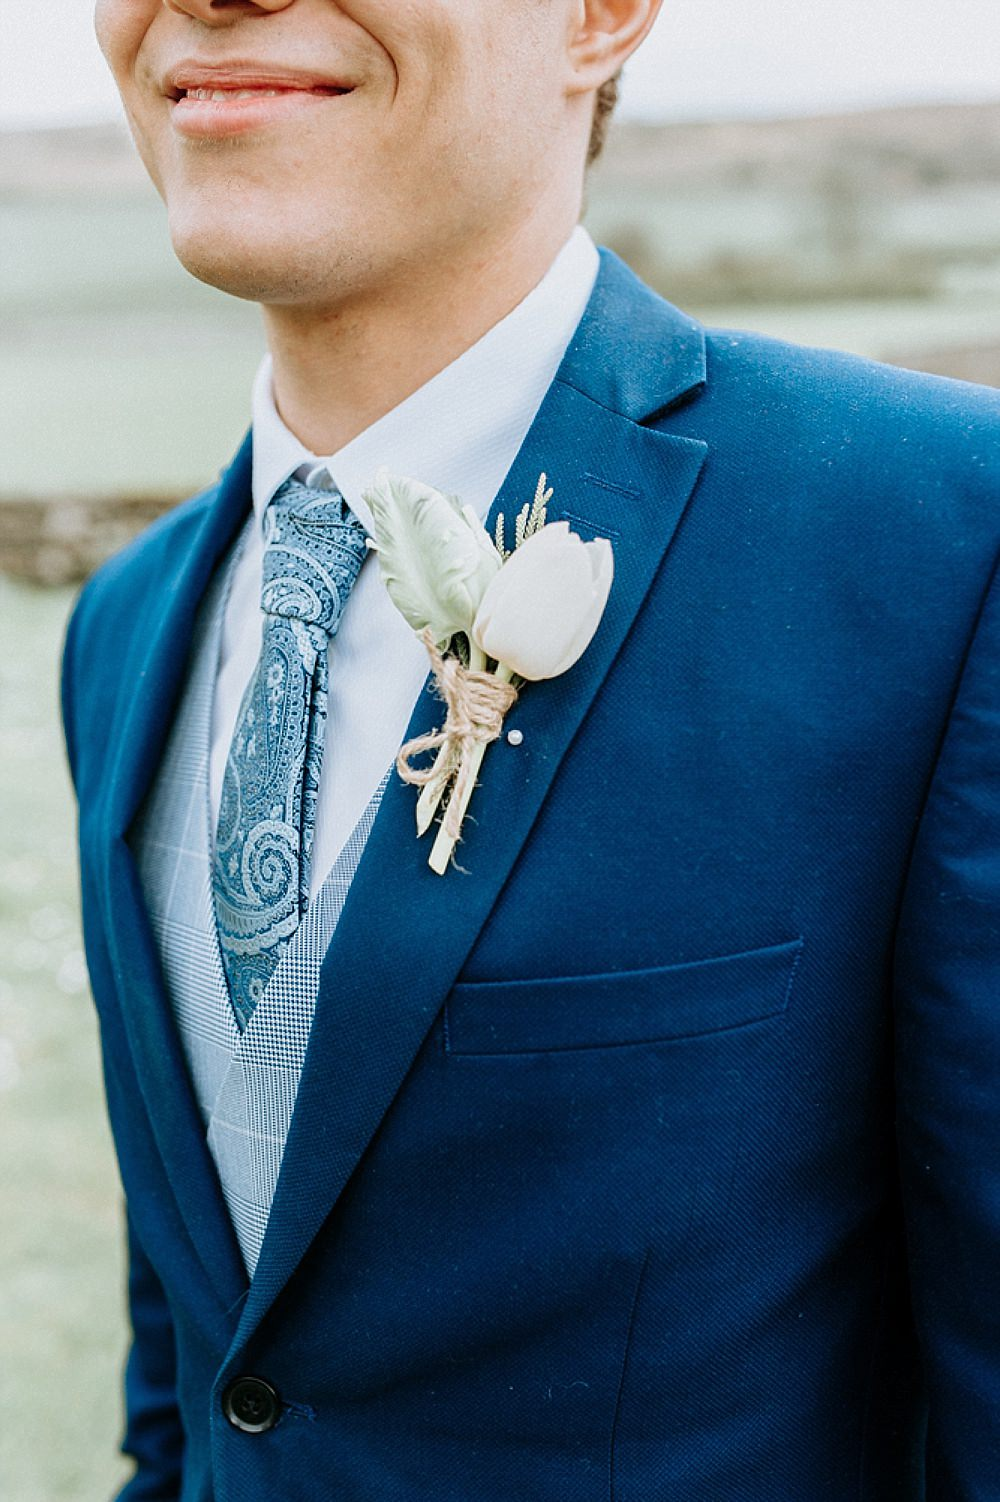 Groom Suit Navy Tie Blue Gold Wedding Ideas Ailsa Reeve Photography